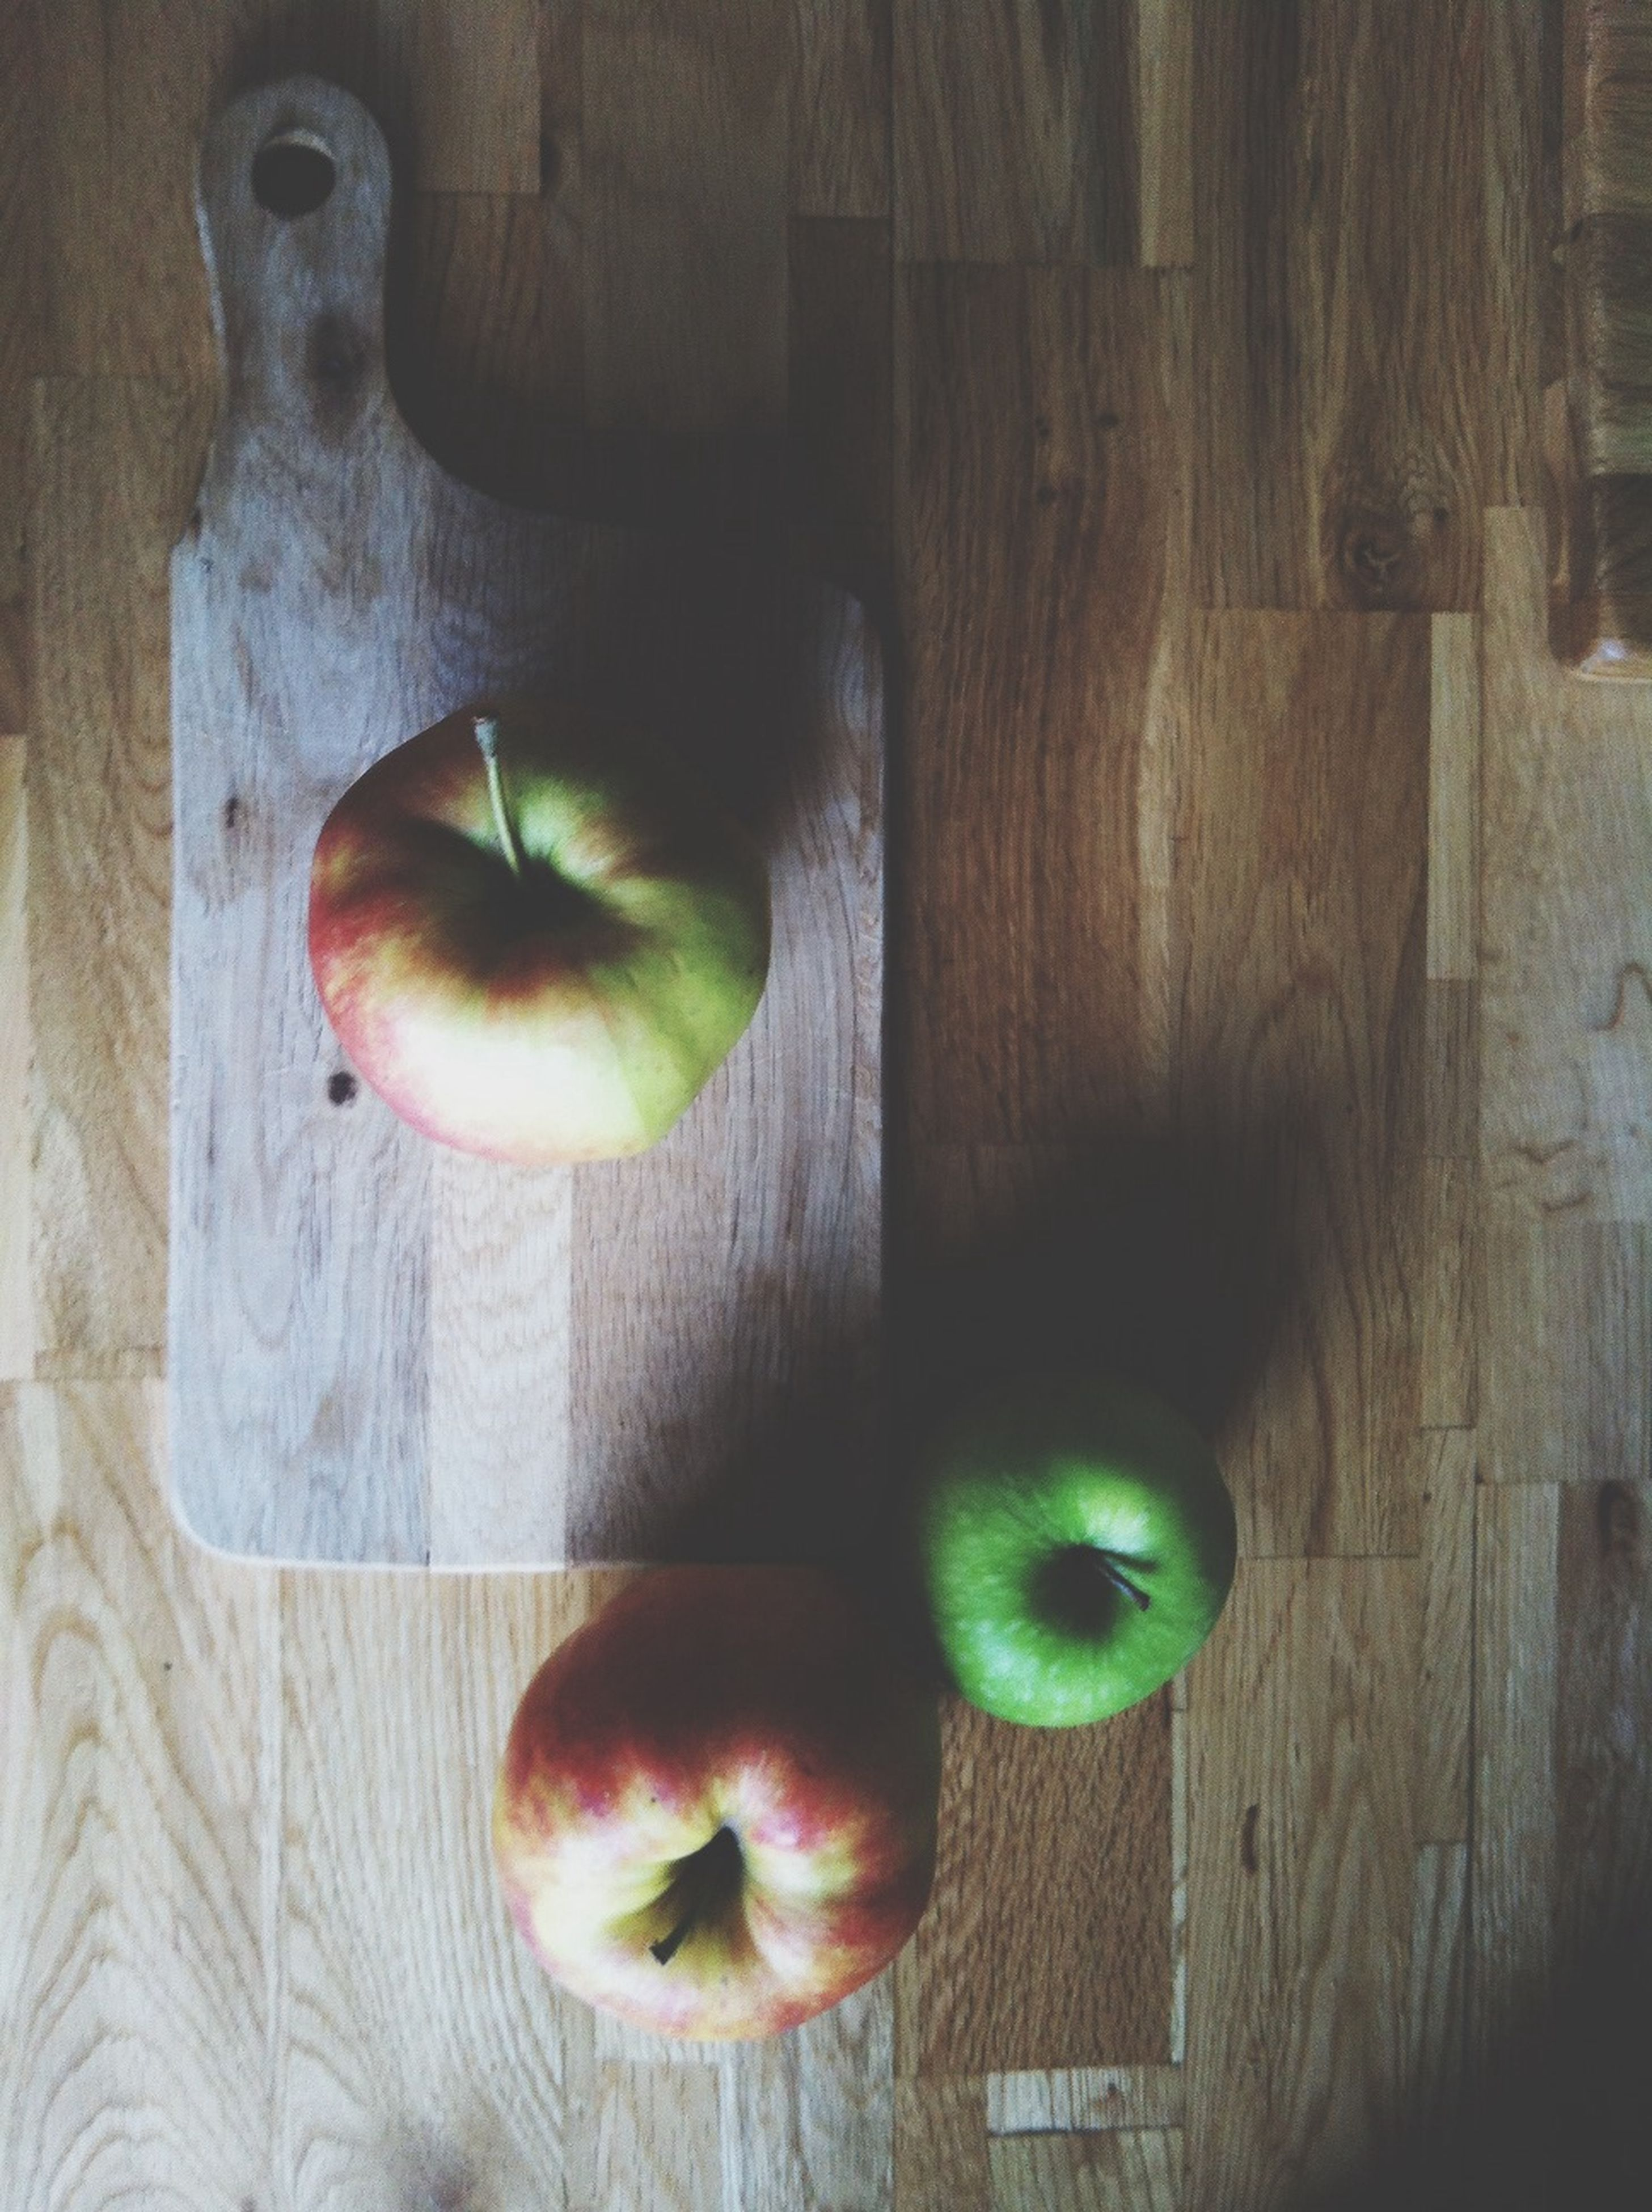 indoors, table, food and drink, wood - material, food, healthy eating, fruit, still life, green color, close-up, wooden, high angle view, freshness, apple, wood, no people, toy, vegetable, childhood, animal representation